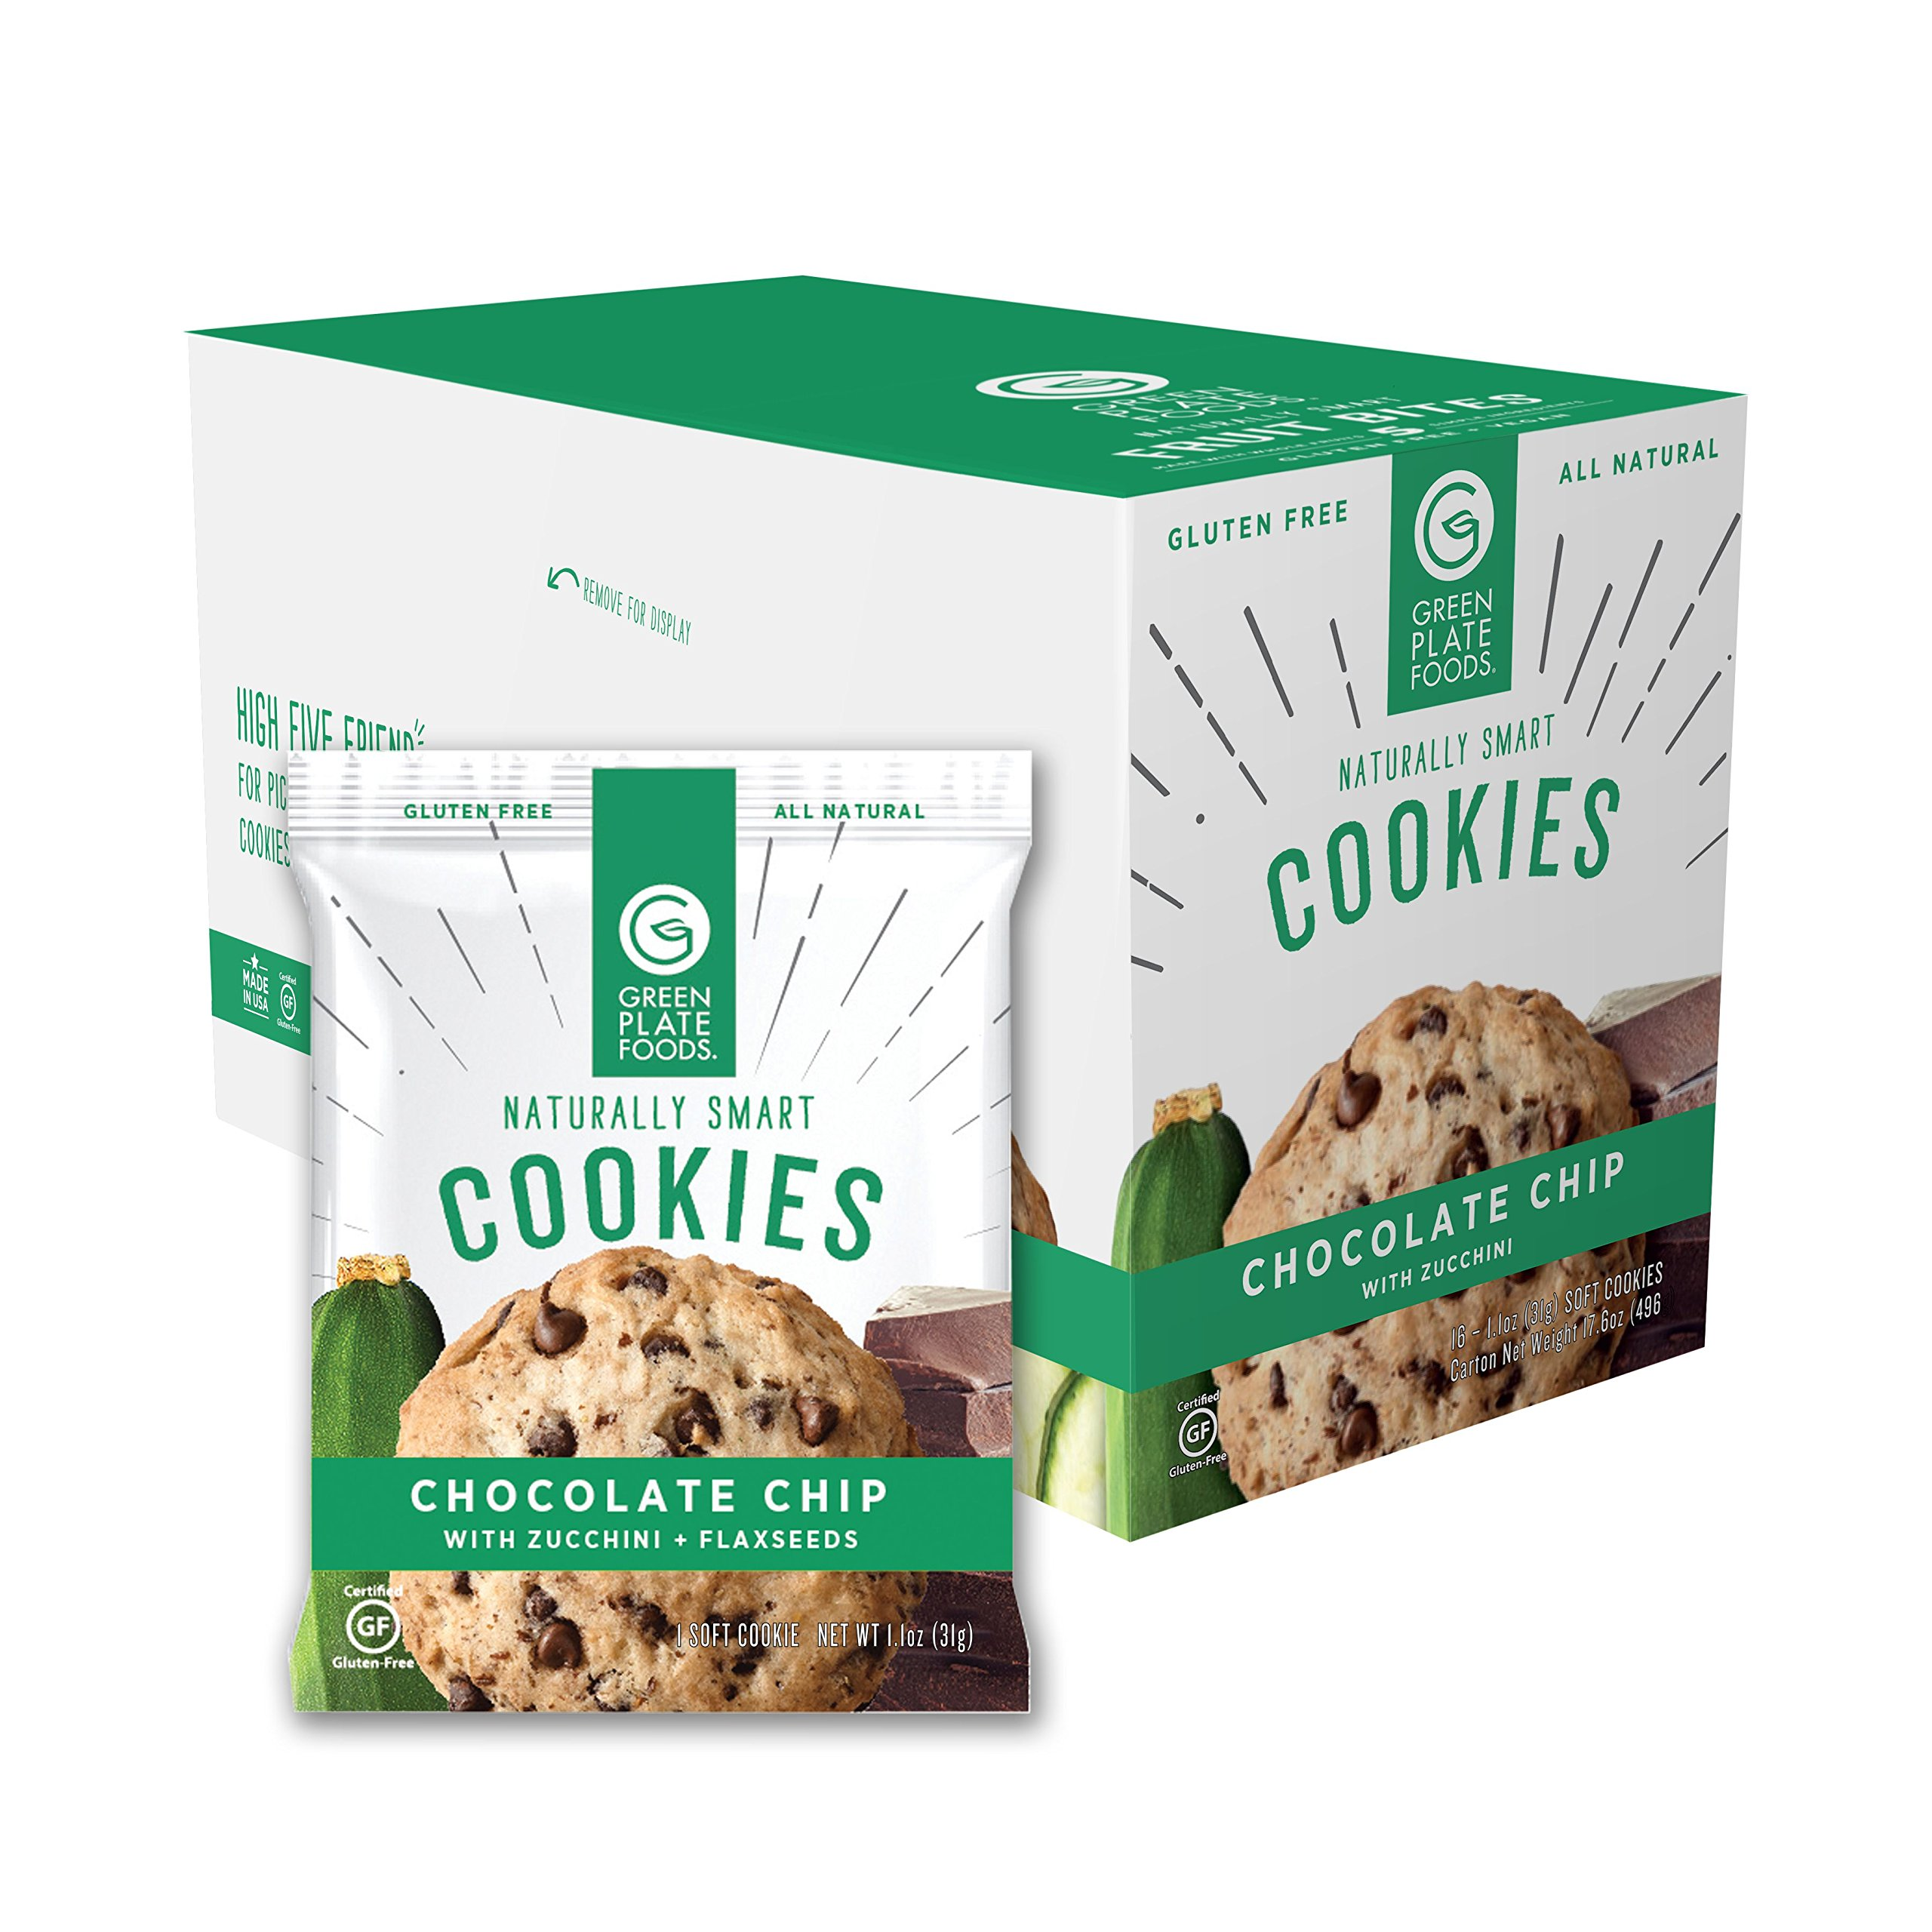 Green Plate Foods Gluten Free Cookies | Healthy Snacks Made With All Natural Ingredients - 16 Count (Chocolate Chip Zucchini) by Green Plate Foods